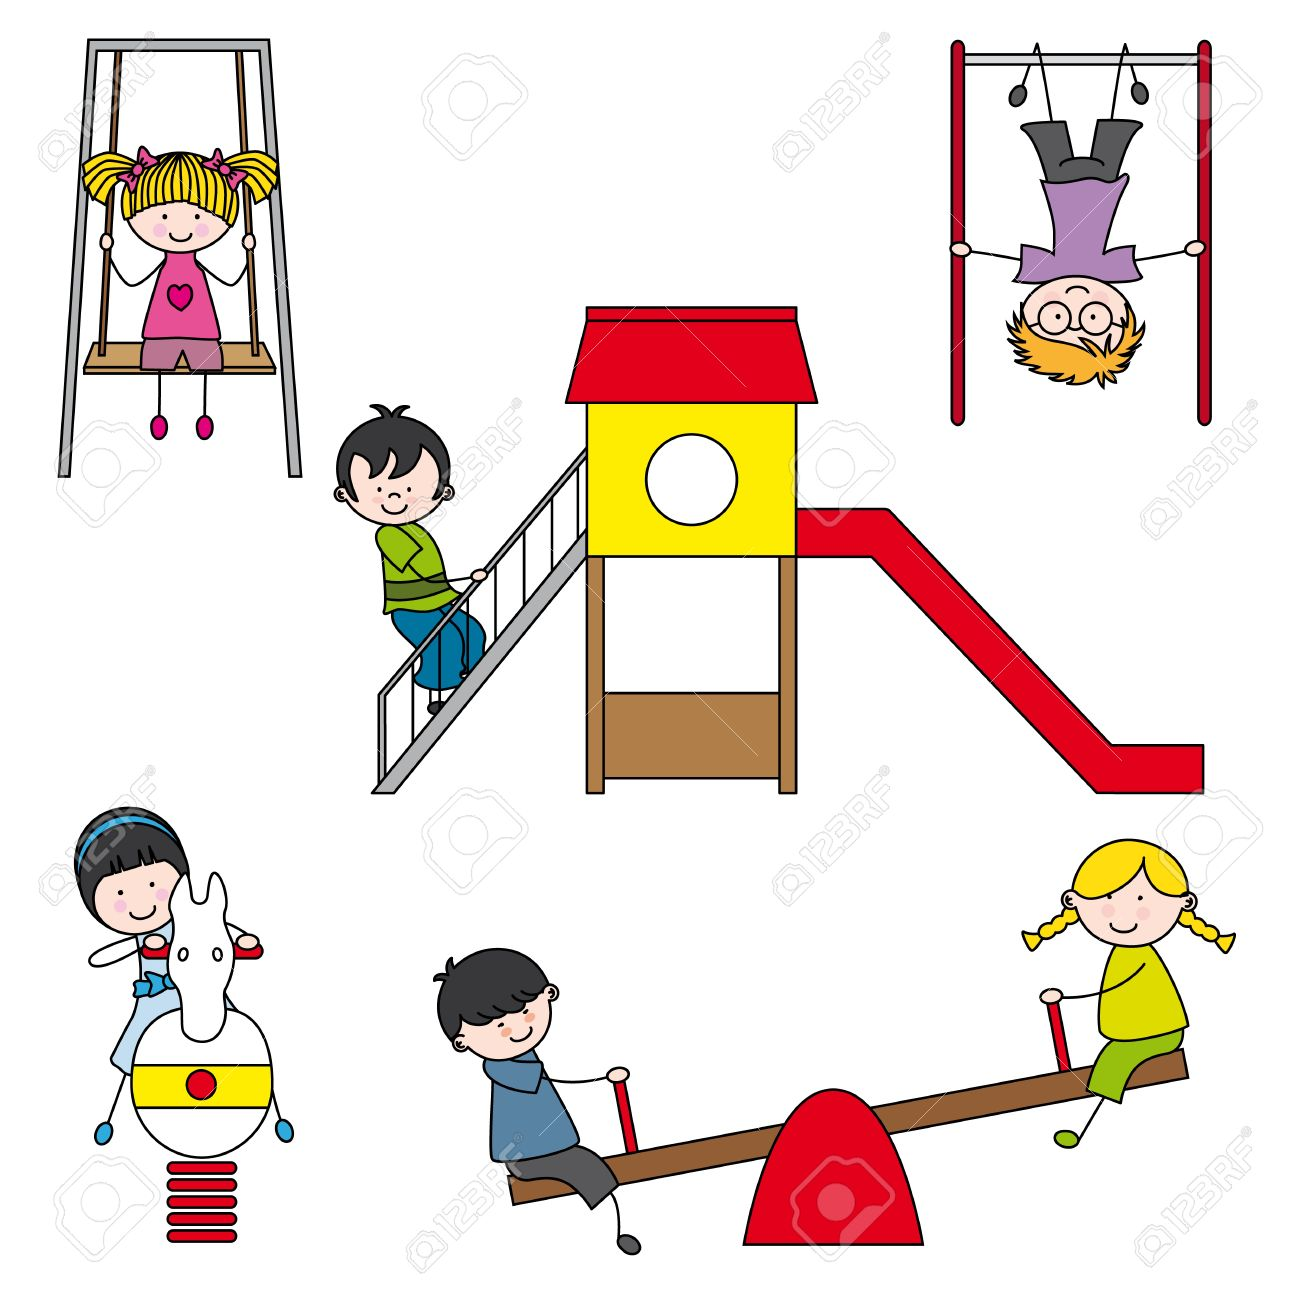 Illustration of kids playing at the park Stock Vector - 15731429